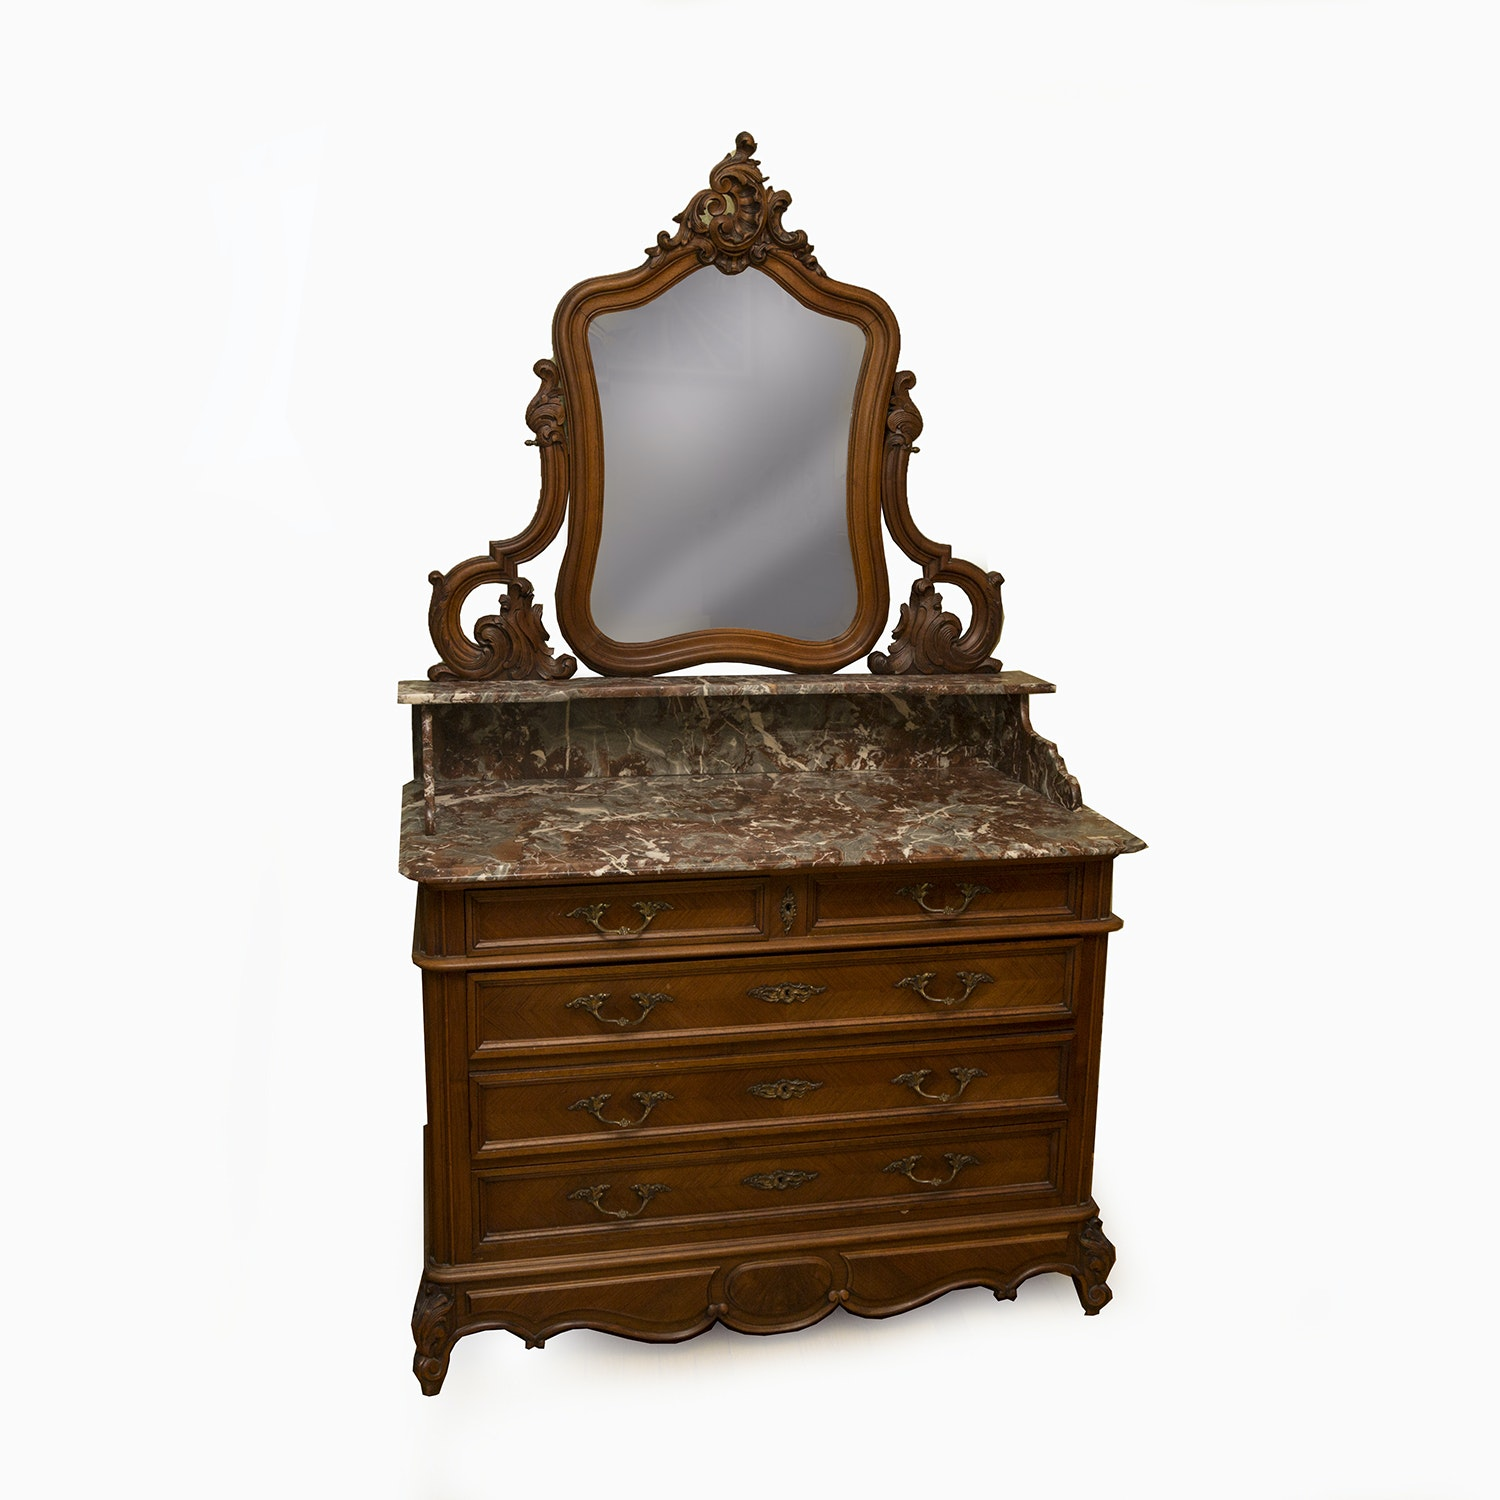 Antique French Louis XV Style Marble Top Dresser with Mirror